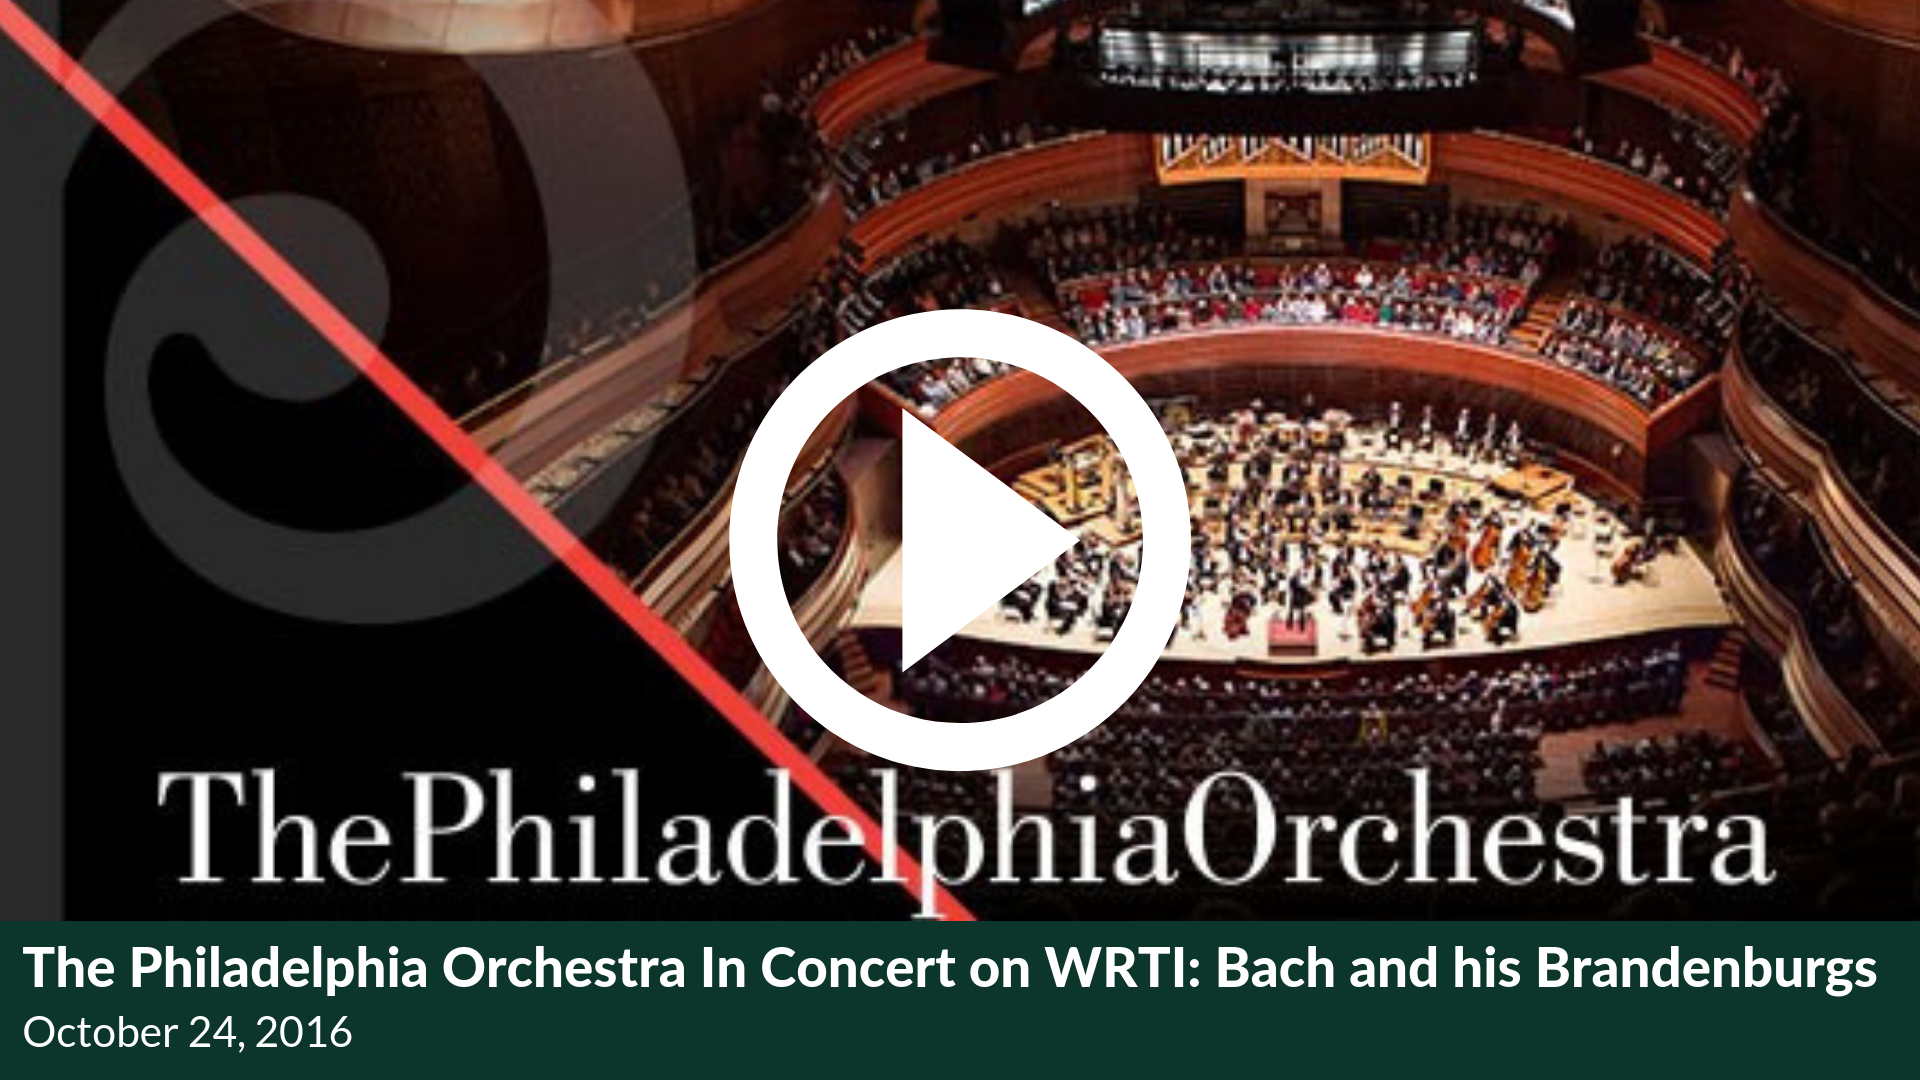 The Philadelphia Orchestra In Concert on WRTI: Bach and his Brandenburgs